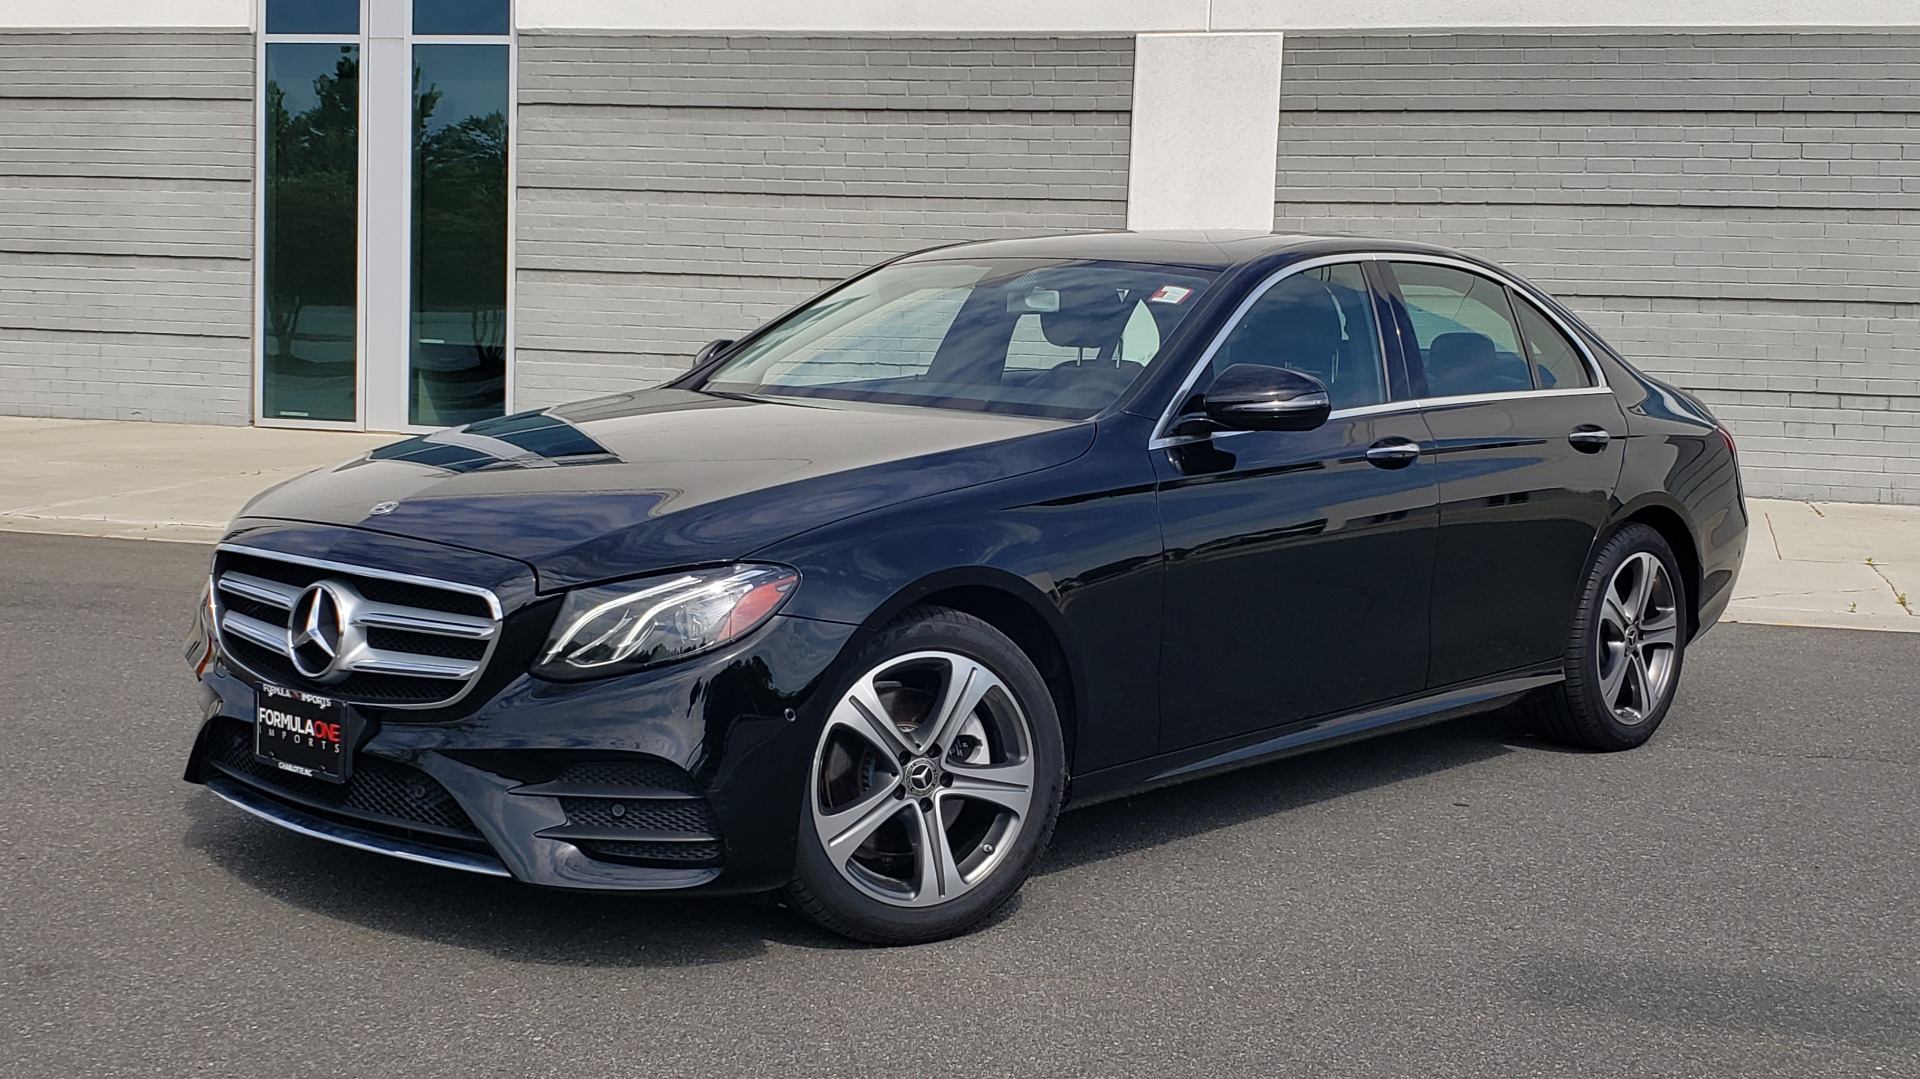 Used 2018 Mercedes-Benz E-CLASS E 300 PREMIUM / 4MATIC / NAV / SUNROOF / H/K SND / REARVIEW for sale $34,195 at Formula Imports in Charlotte NC 28227 1